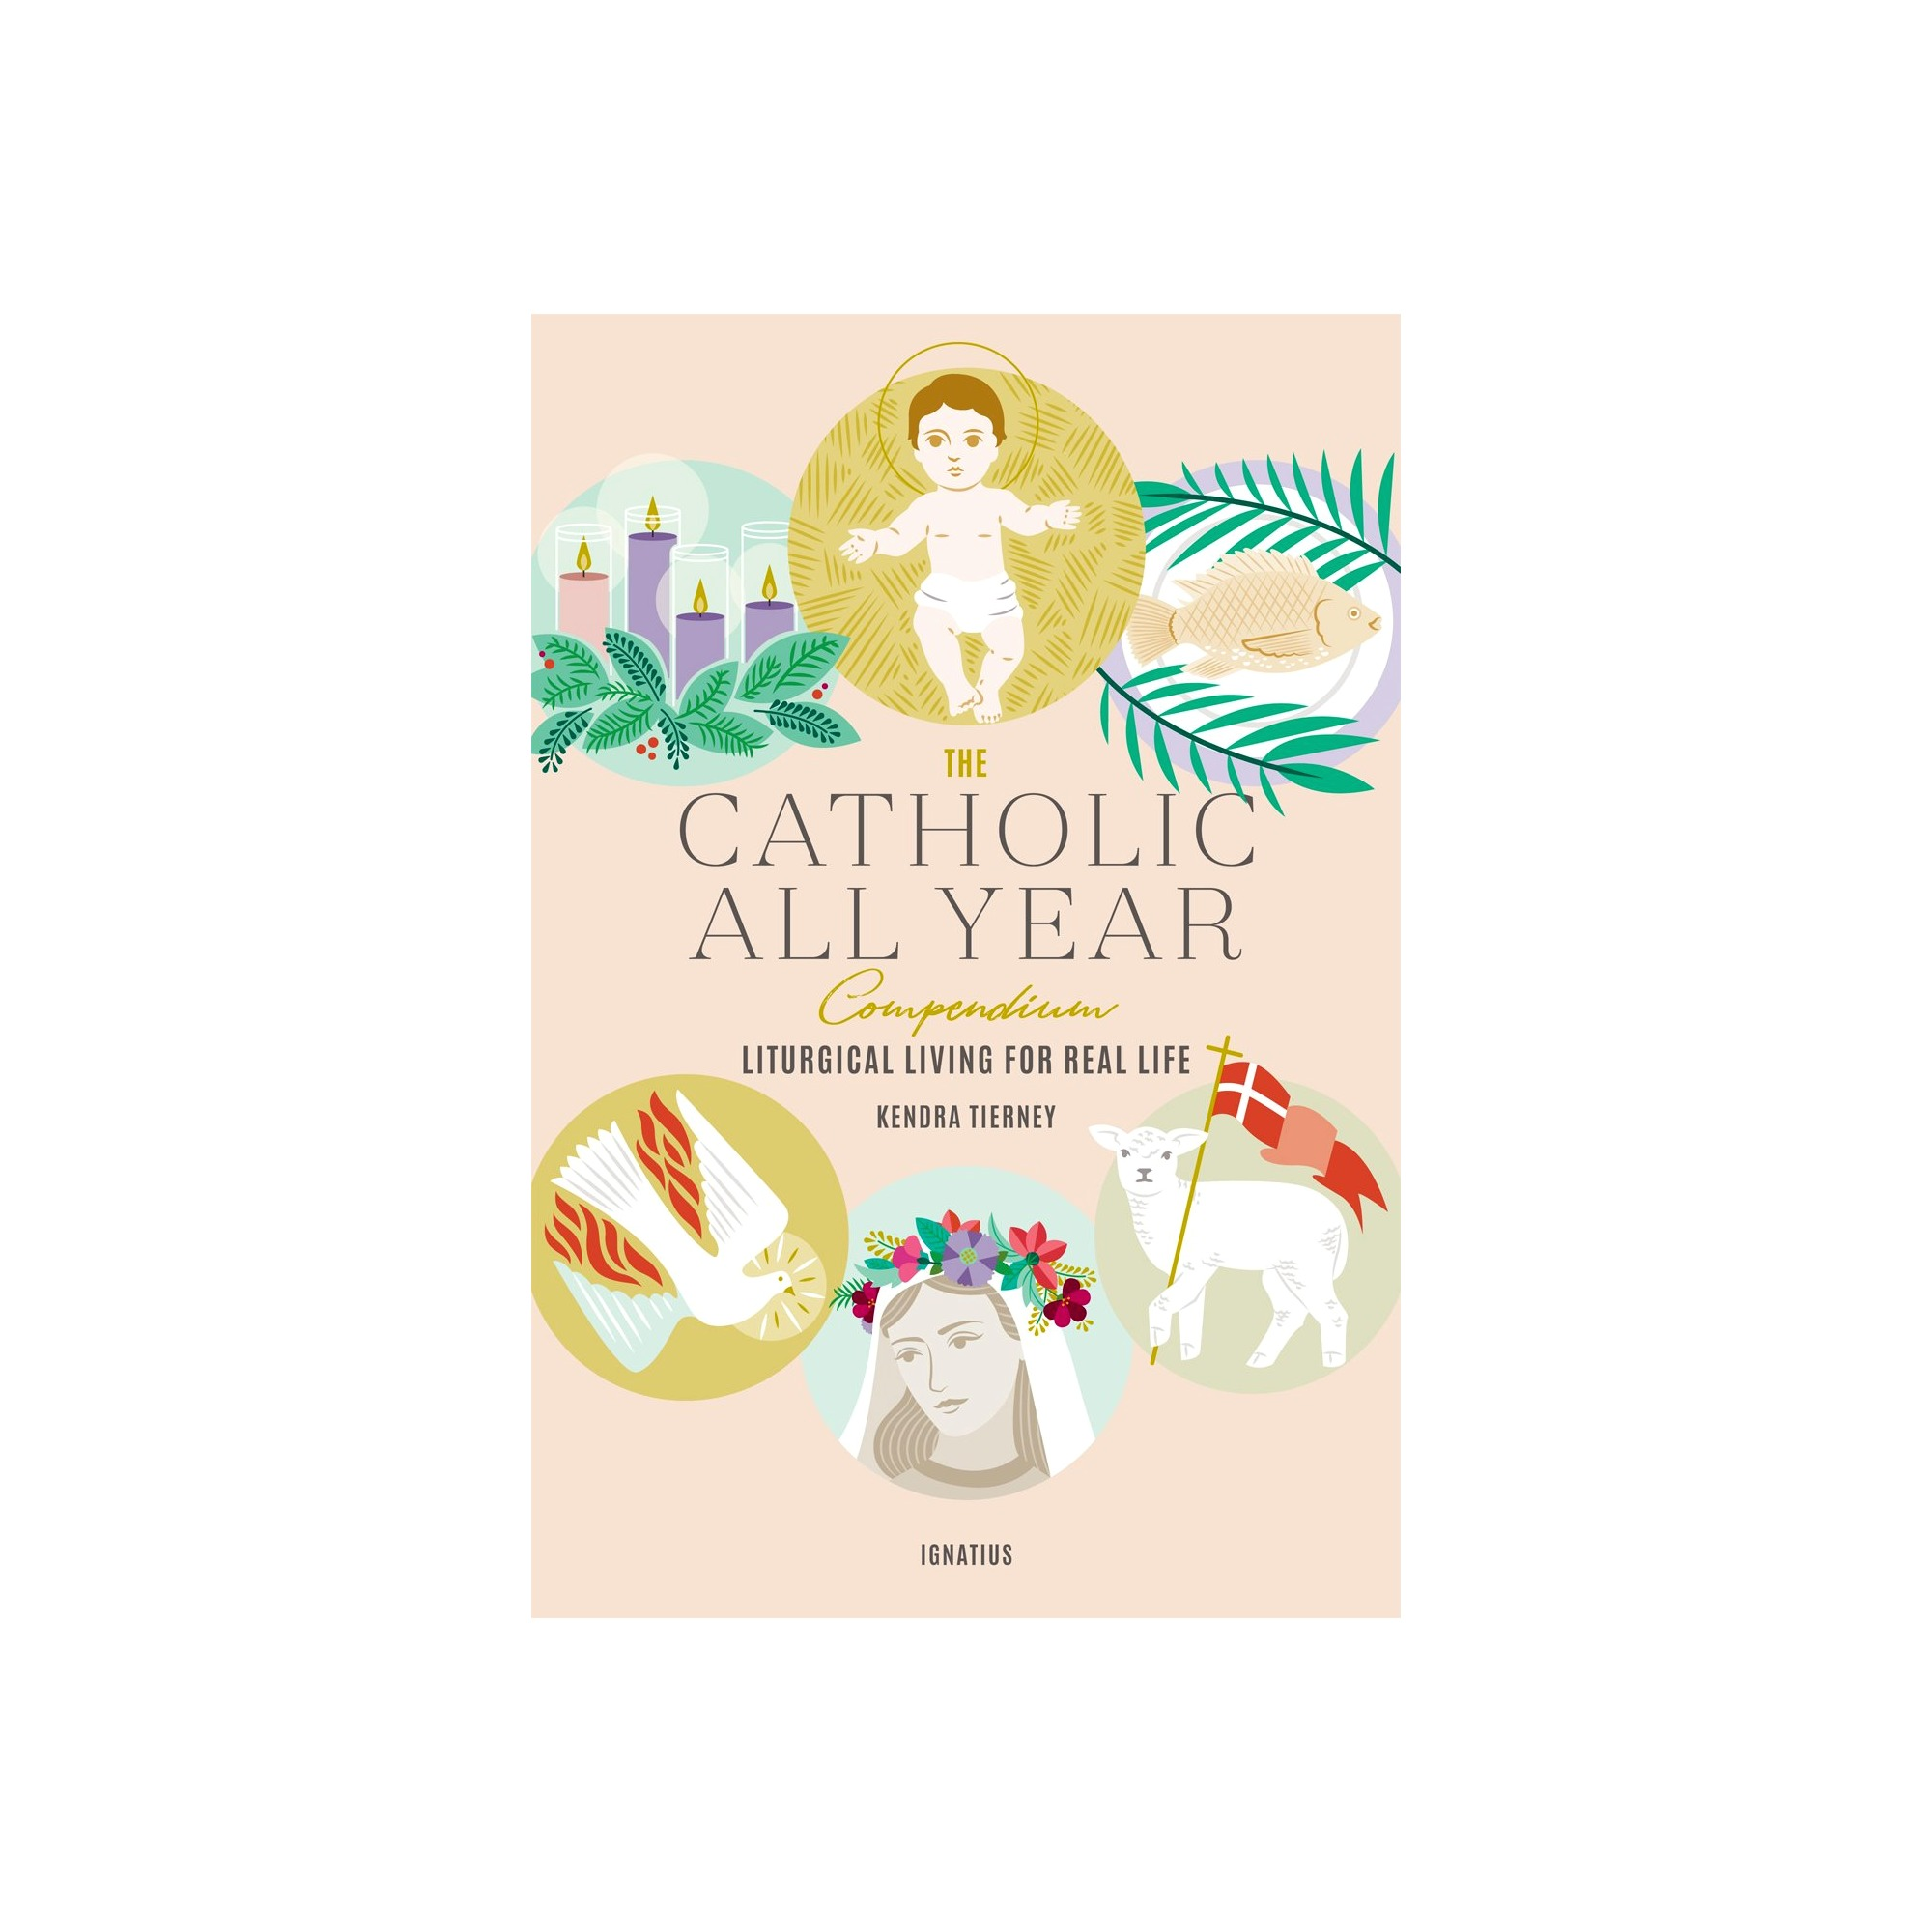 The Catholic All Year Compendium Liturgical Living For Real Life